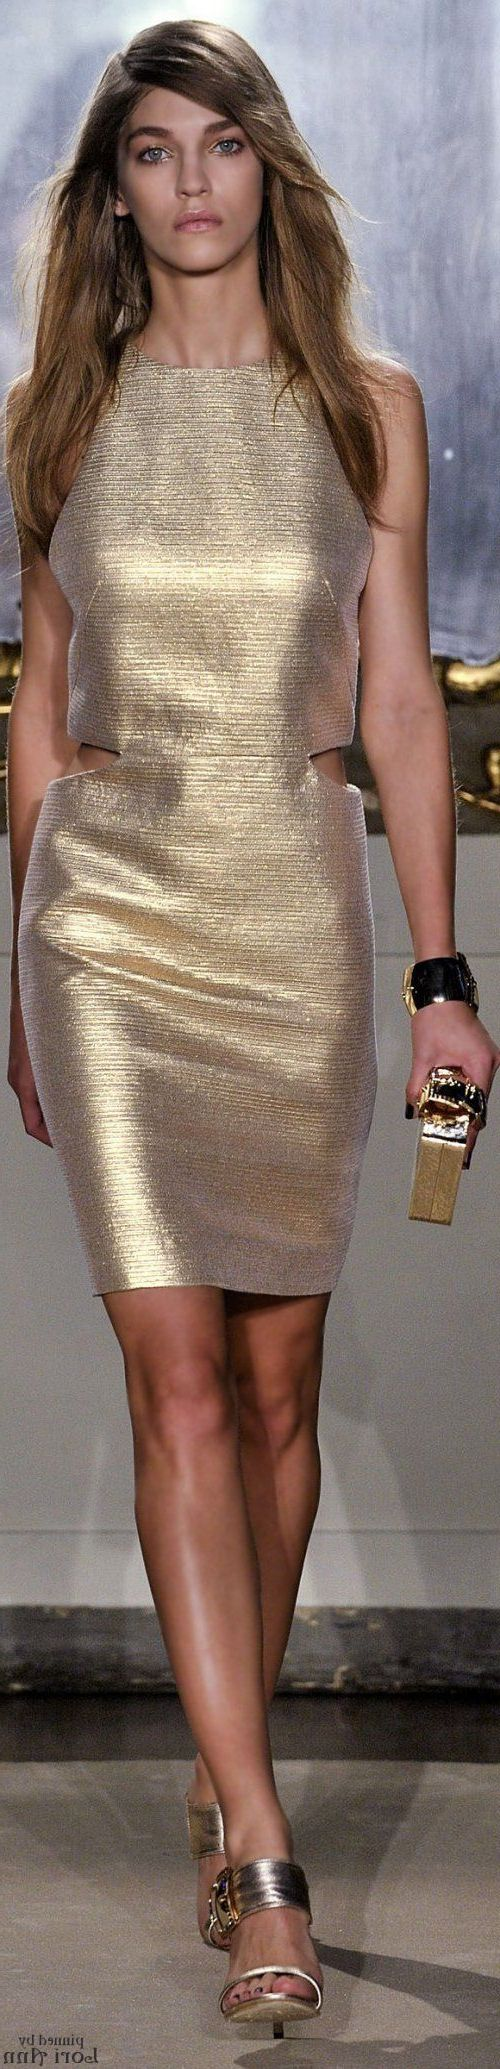 Metallic Clothes & Accessories For Women 2019